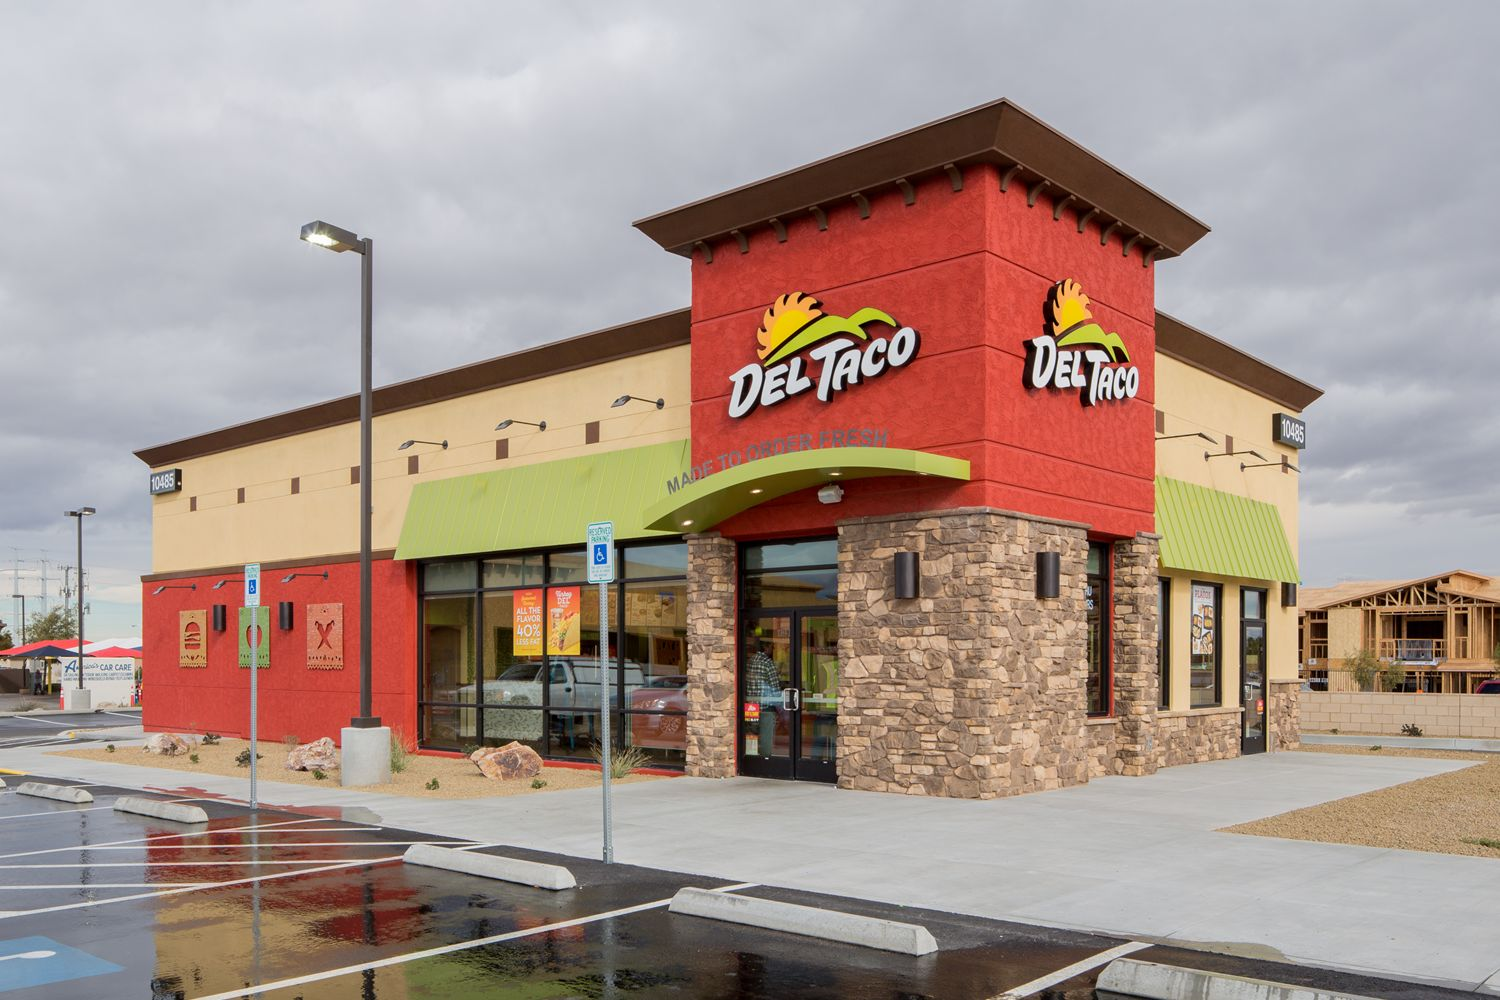 Del Taco Elevates Development Incentives to Fuel Growth in New Markets